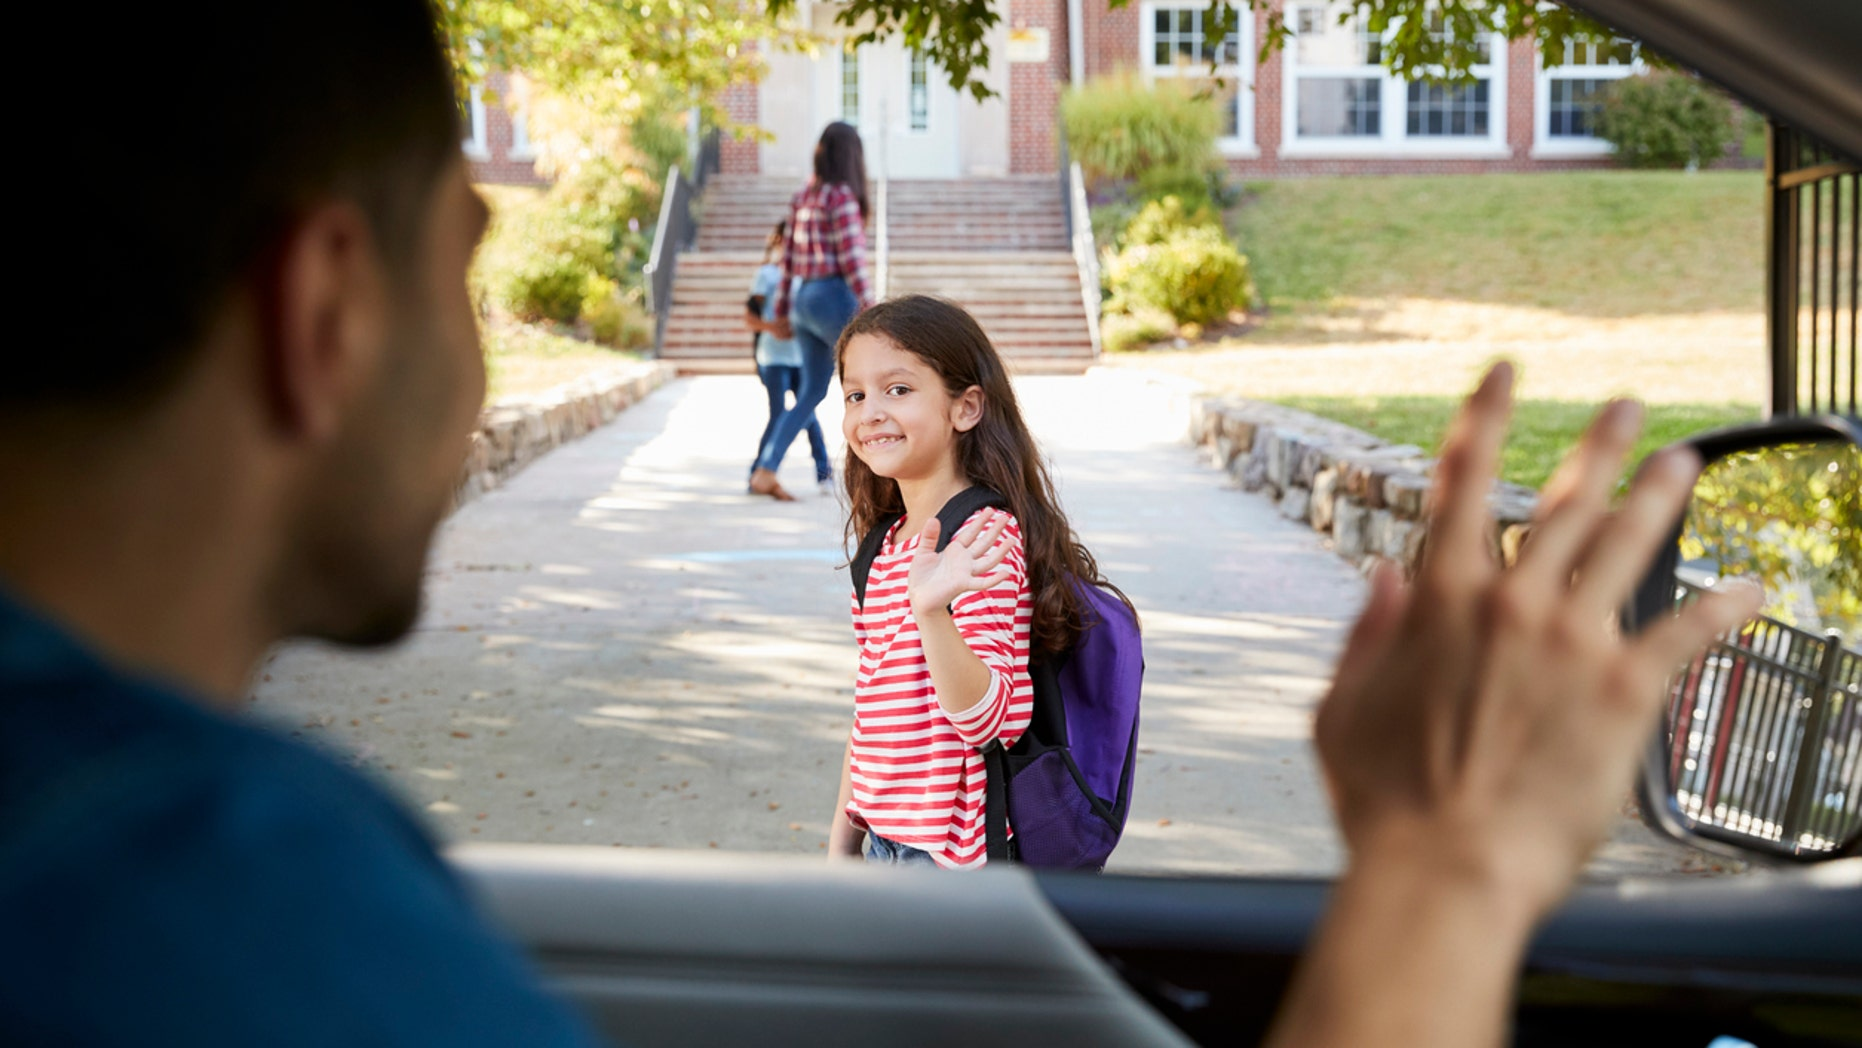 Parents were told that they'd be forking out around $2.60 per child for the on-site before school care if they dropped their kids off before 8:50 am.